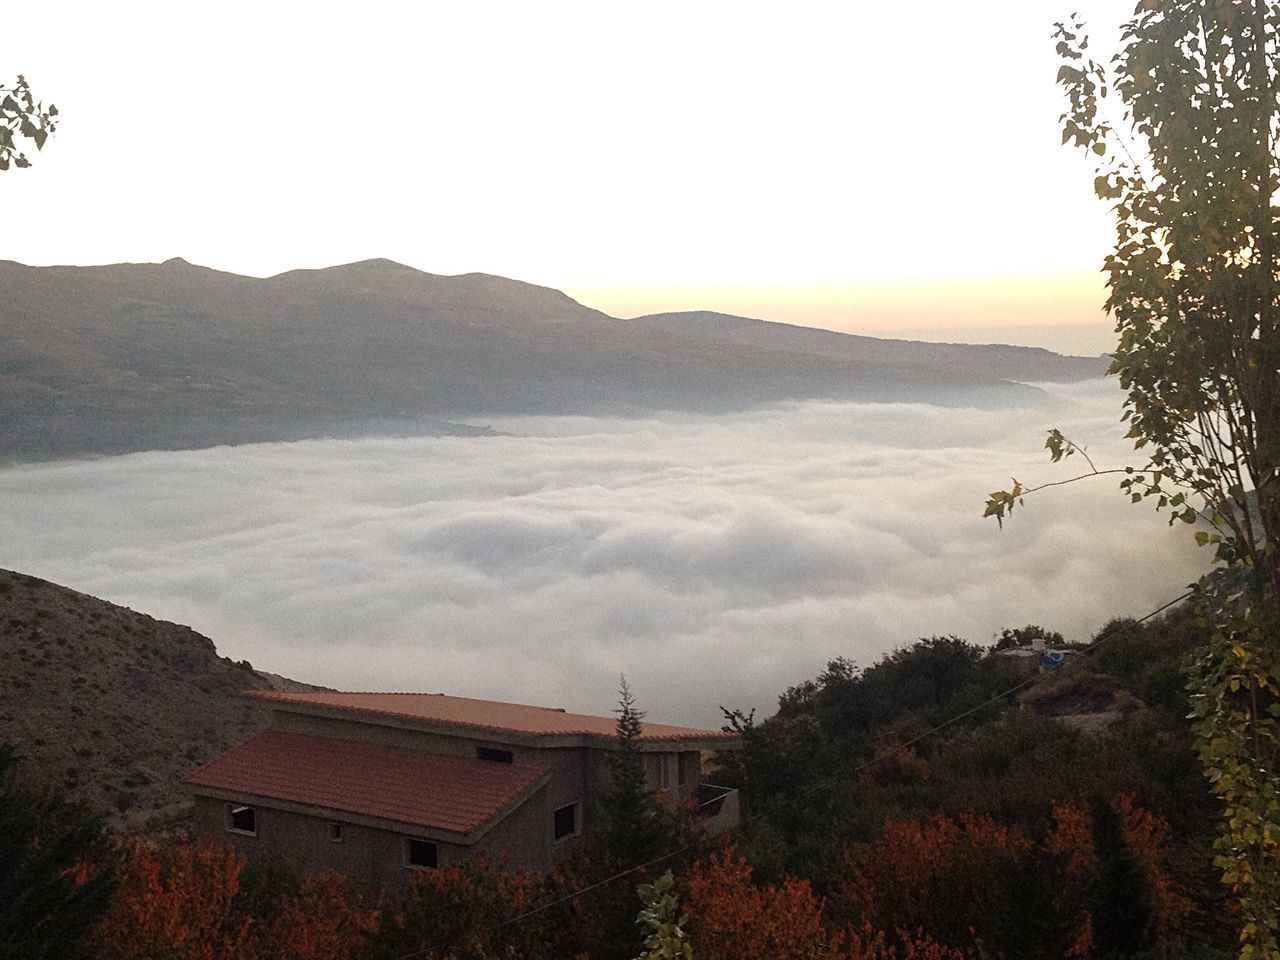 Above The Clouds Mountains And Valleys Lebanon East Mediterranean